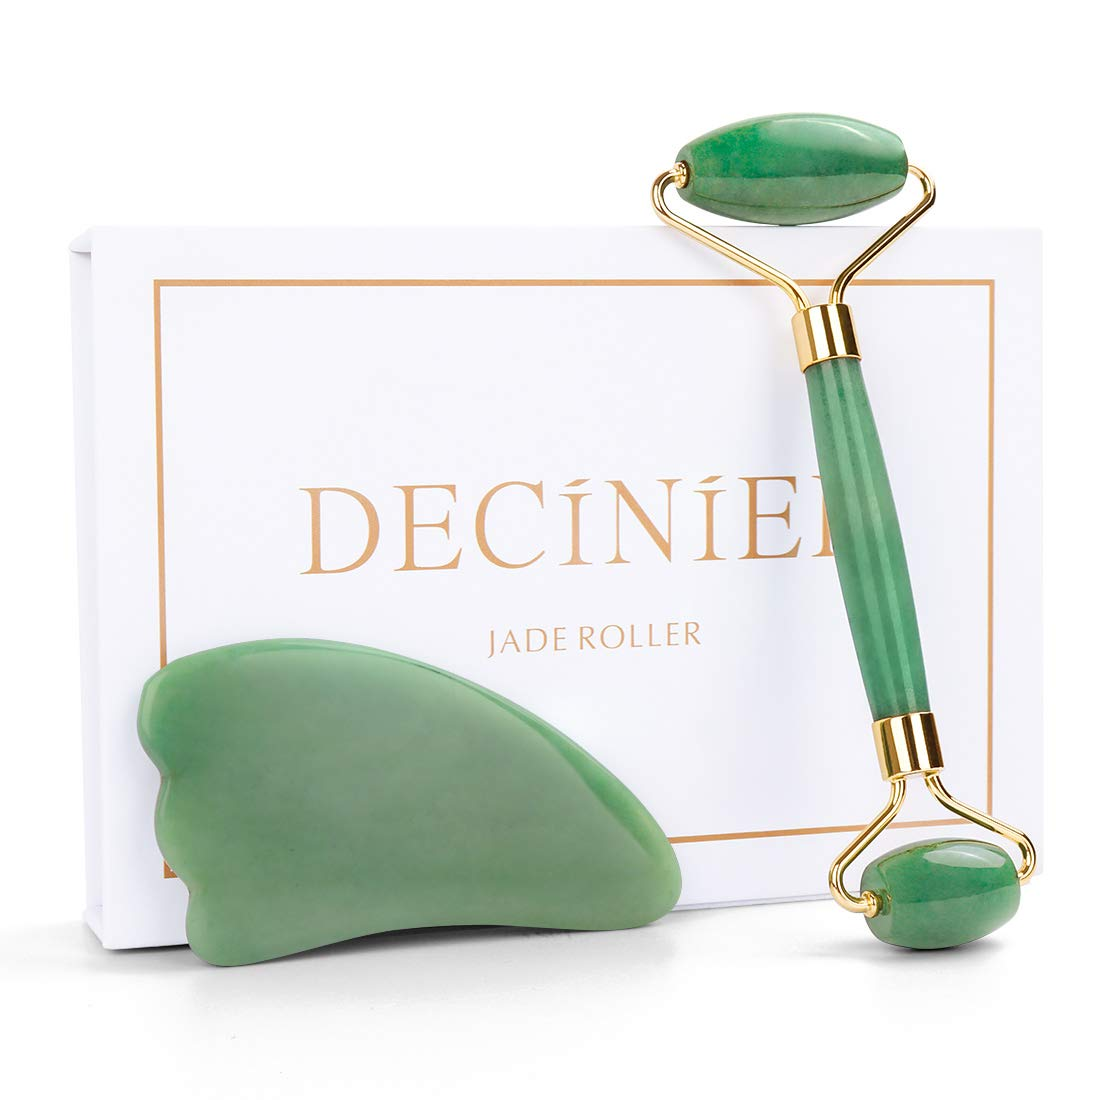 Deciniee Jade Roller and Gua Sha Tools Set - 100% Real Natural Nephrite Jade Roller for Face, Eye, Neck - Anti Aging Jade Facial Roller Massager for Slimming & Firming - Rejuvenate Skin by Deciniee